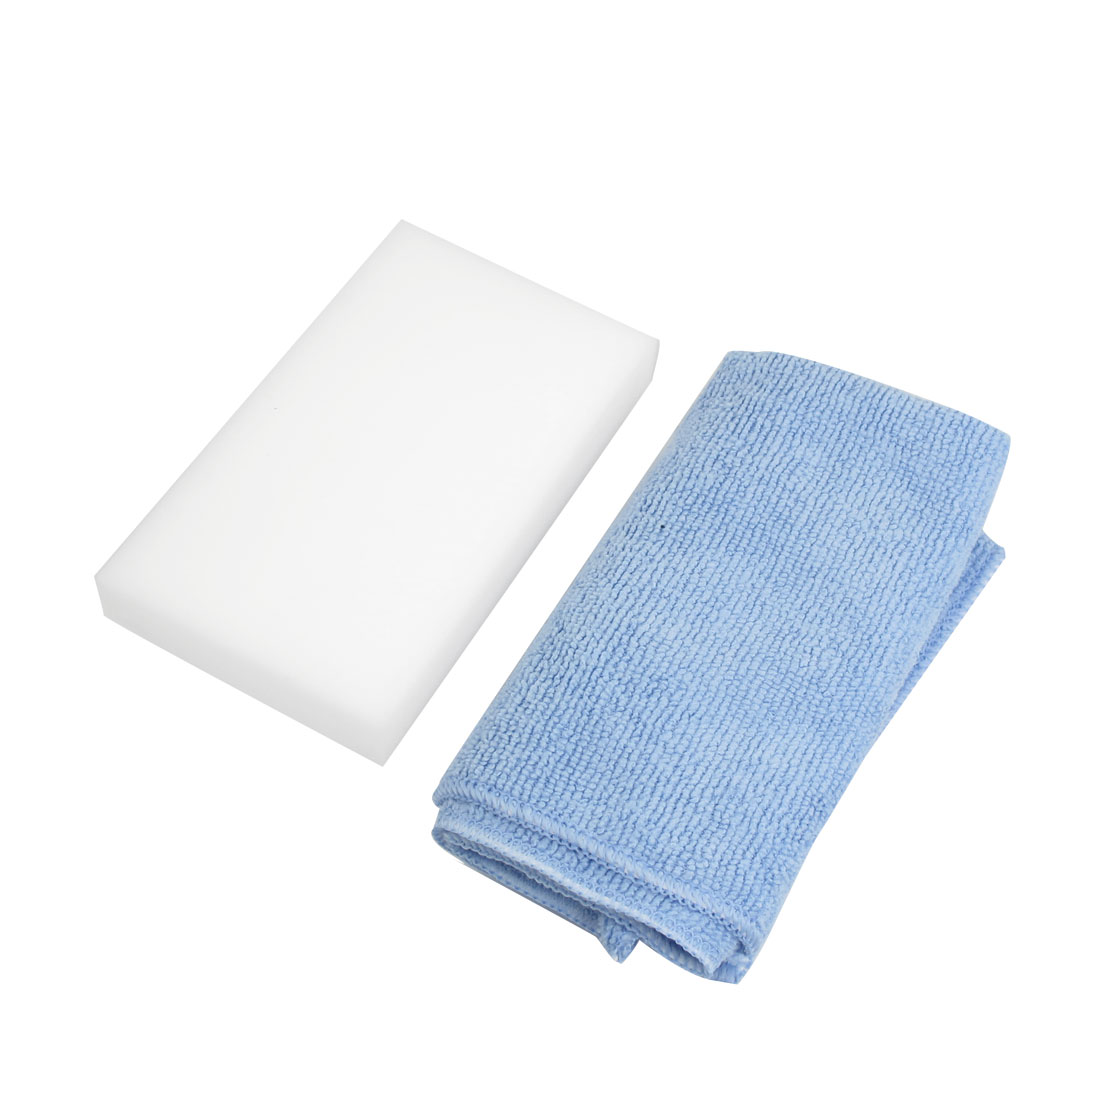 Vehicles Car Cleaning Washing Tool White Sponge Pad Mat w Blue Towel 2 in 1 Sets